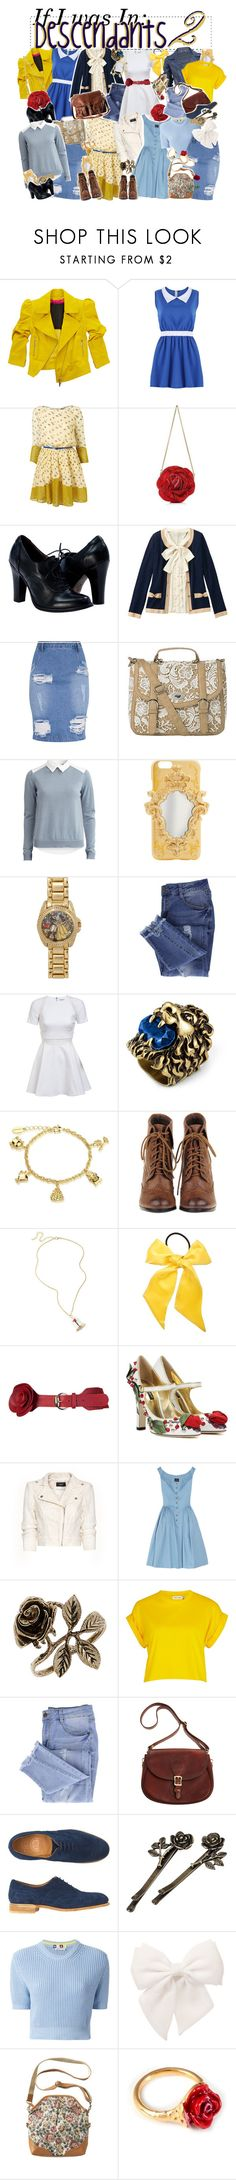 """""""If I was In: Descendants 2"""" by kateremington-1 ❤ liked on Polyvore featuring Emanuel Ungaro, Voi Jeans, Vila Milano, Disney, Essie, Elizabeth and James, H&M, Gucci, L. Erickson and Unk"""